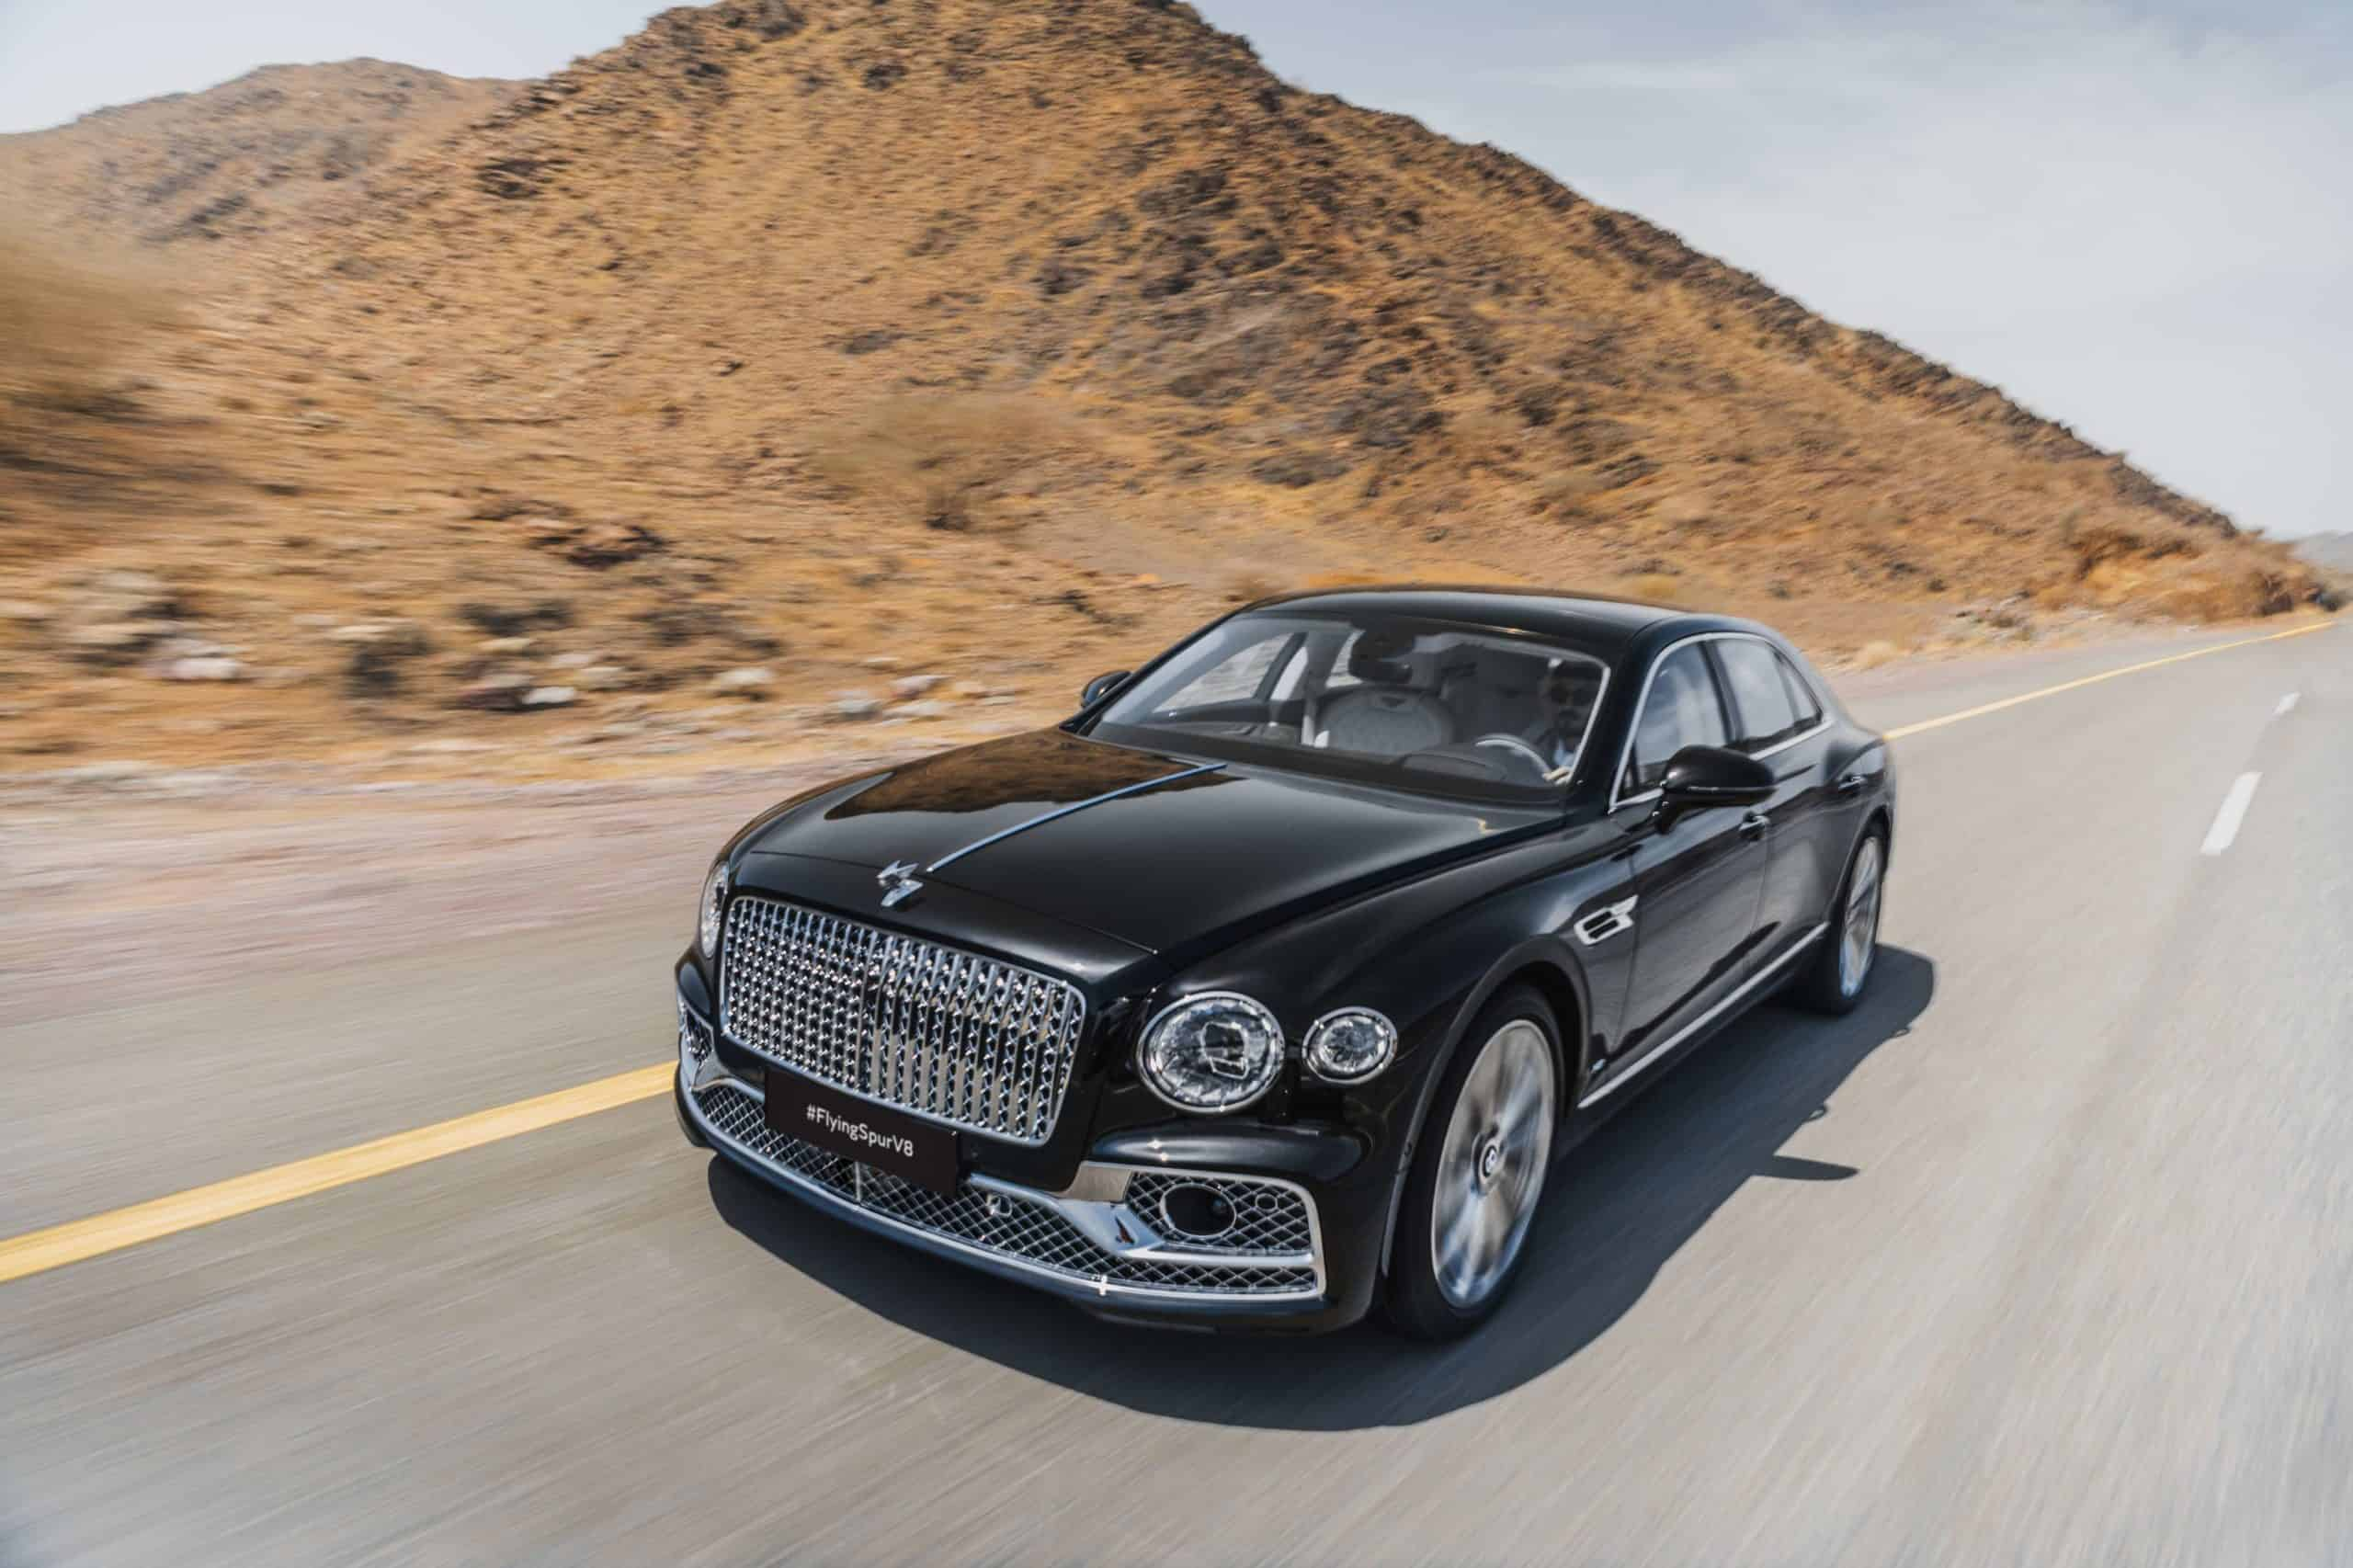 Flying Spur Ready to Soar With V8 Power Across the Middle East